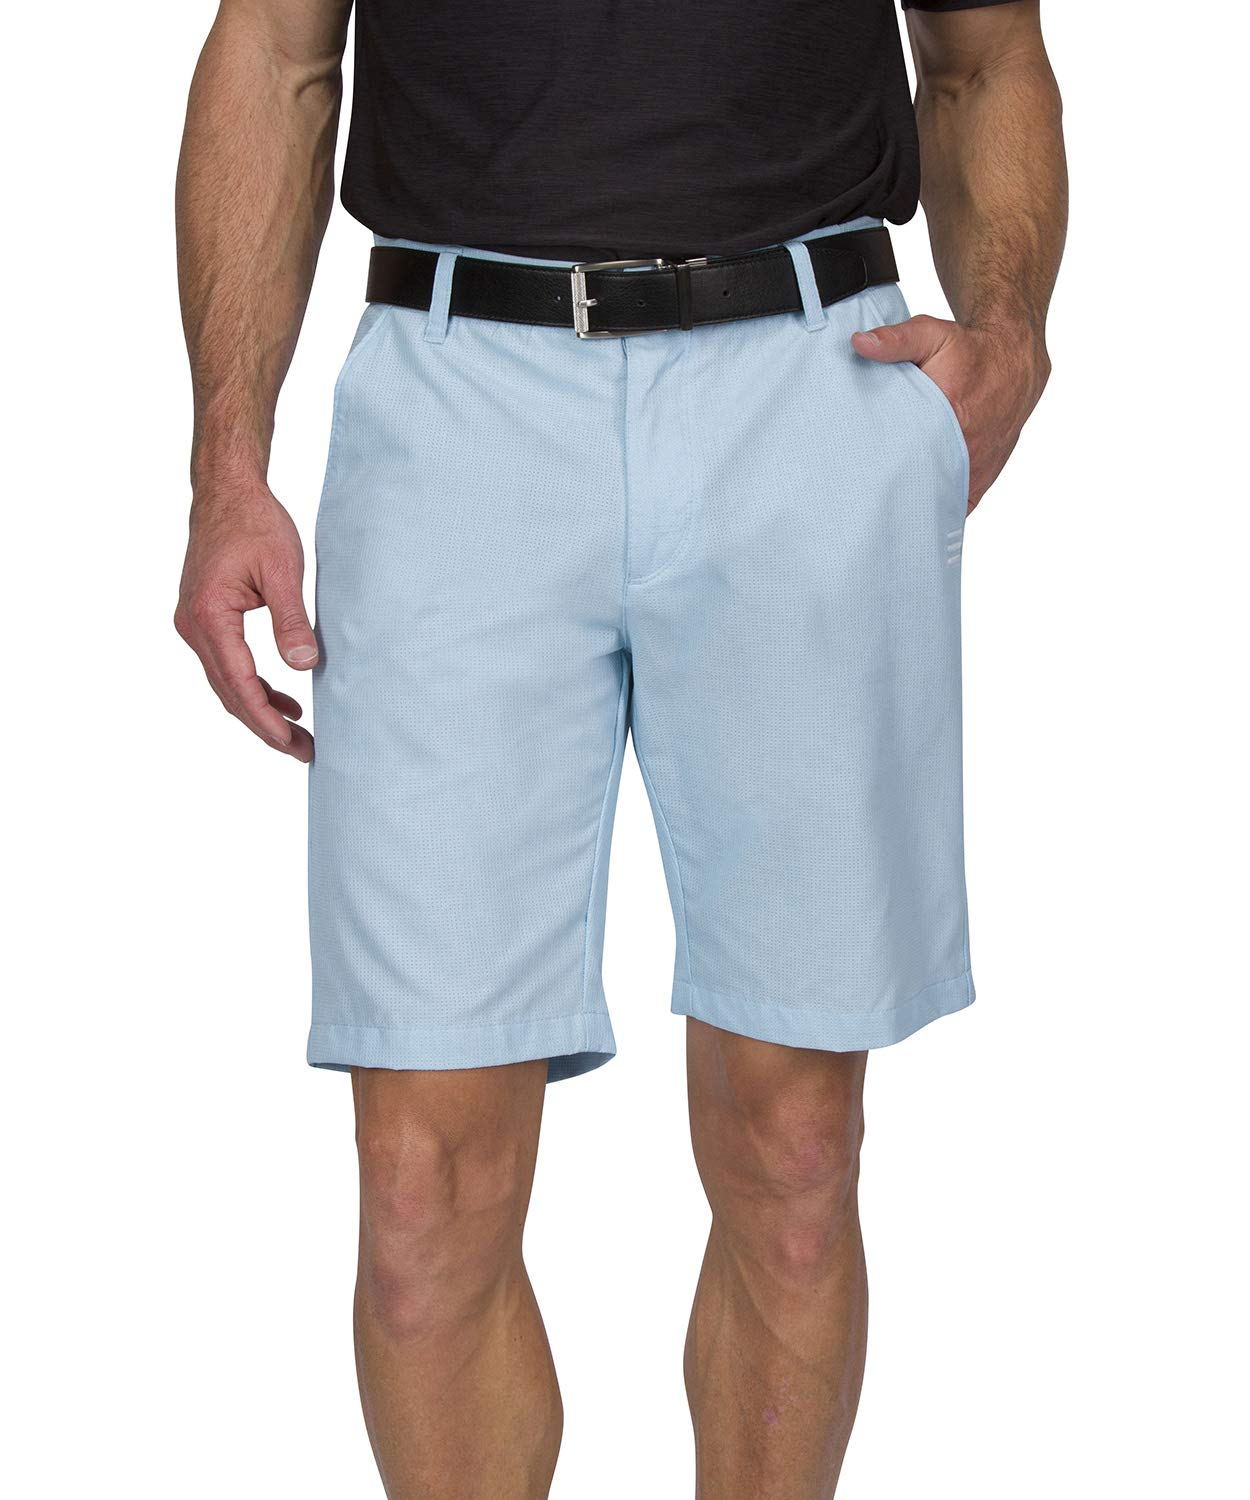 Dry Fit Golf Shorts for Men - Casual Mens Shorts Moisture Wicking - Men's Chino Shorts with Elastic Waistband Classic Blue by Three Sixty Six